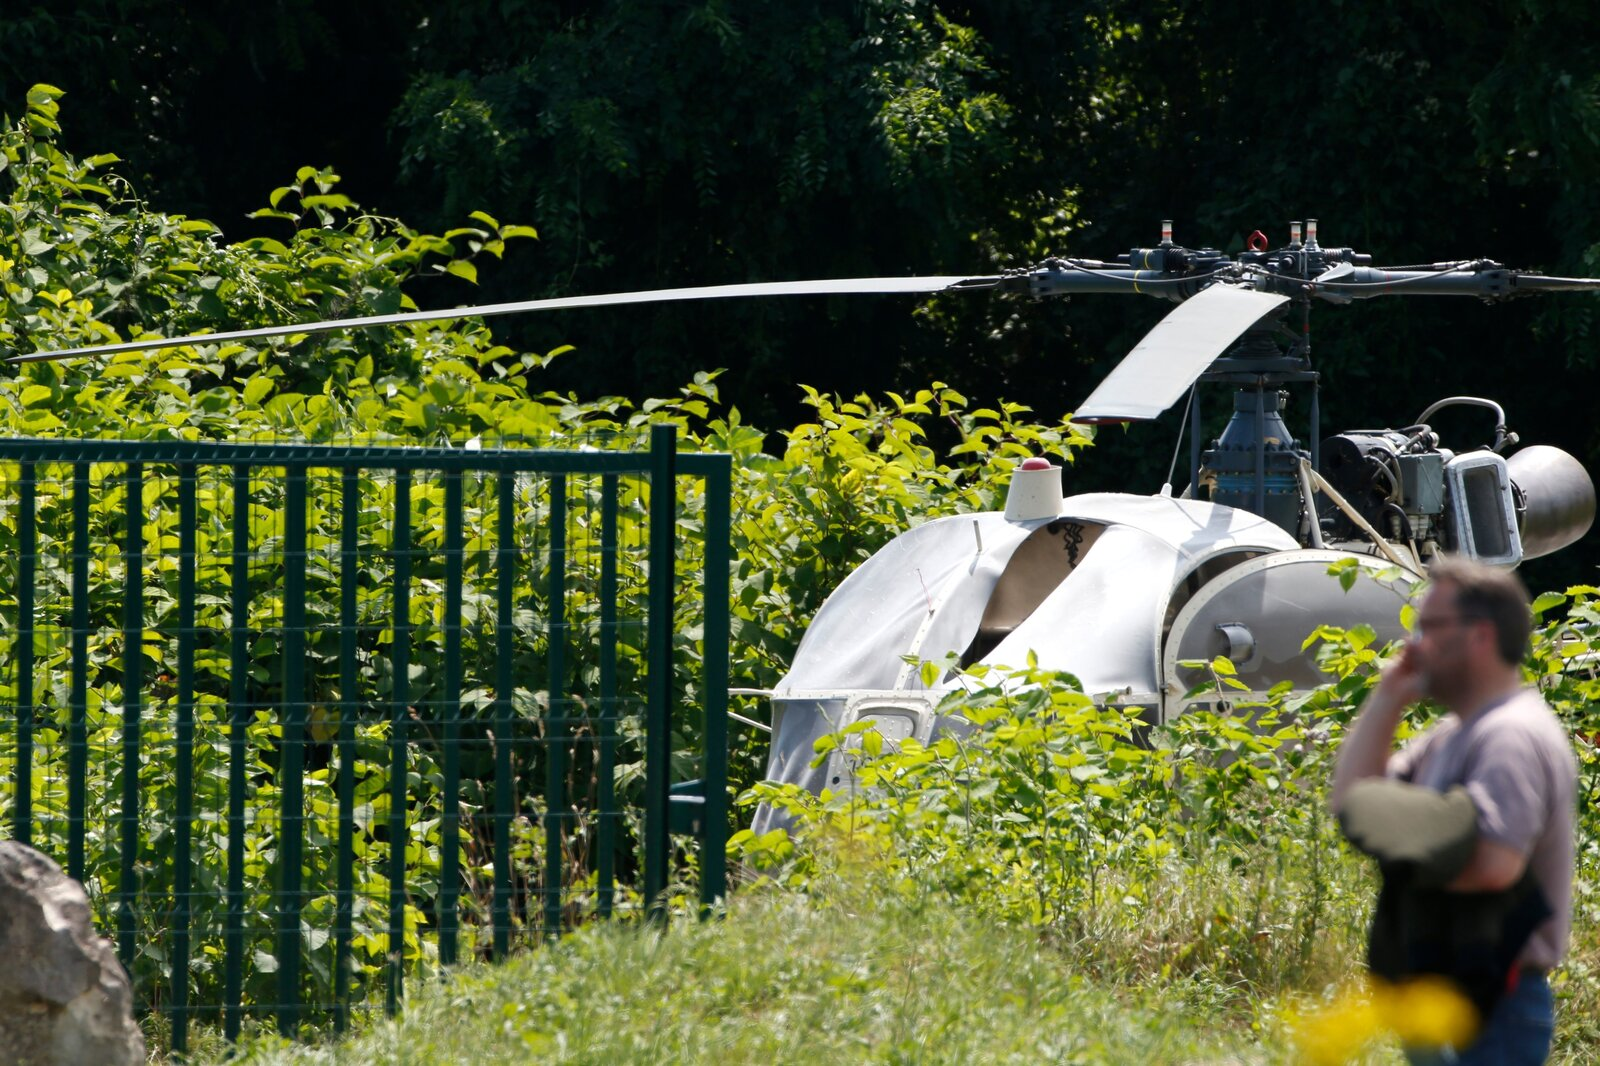 Infamous French criminal escapes prison in helicopter